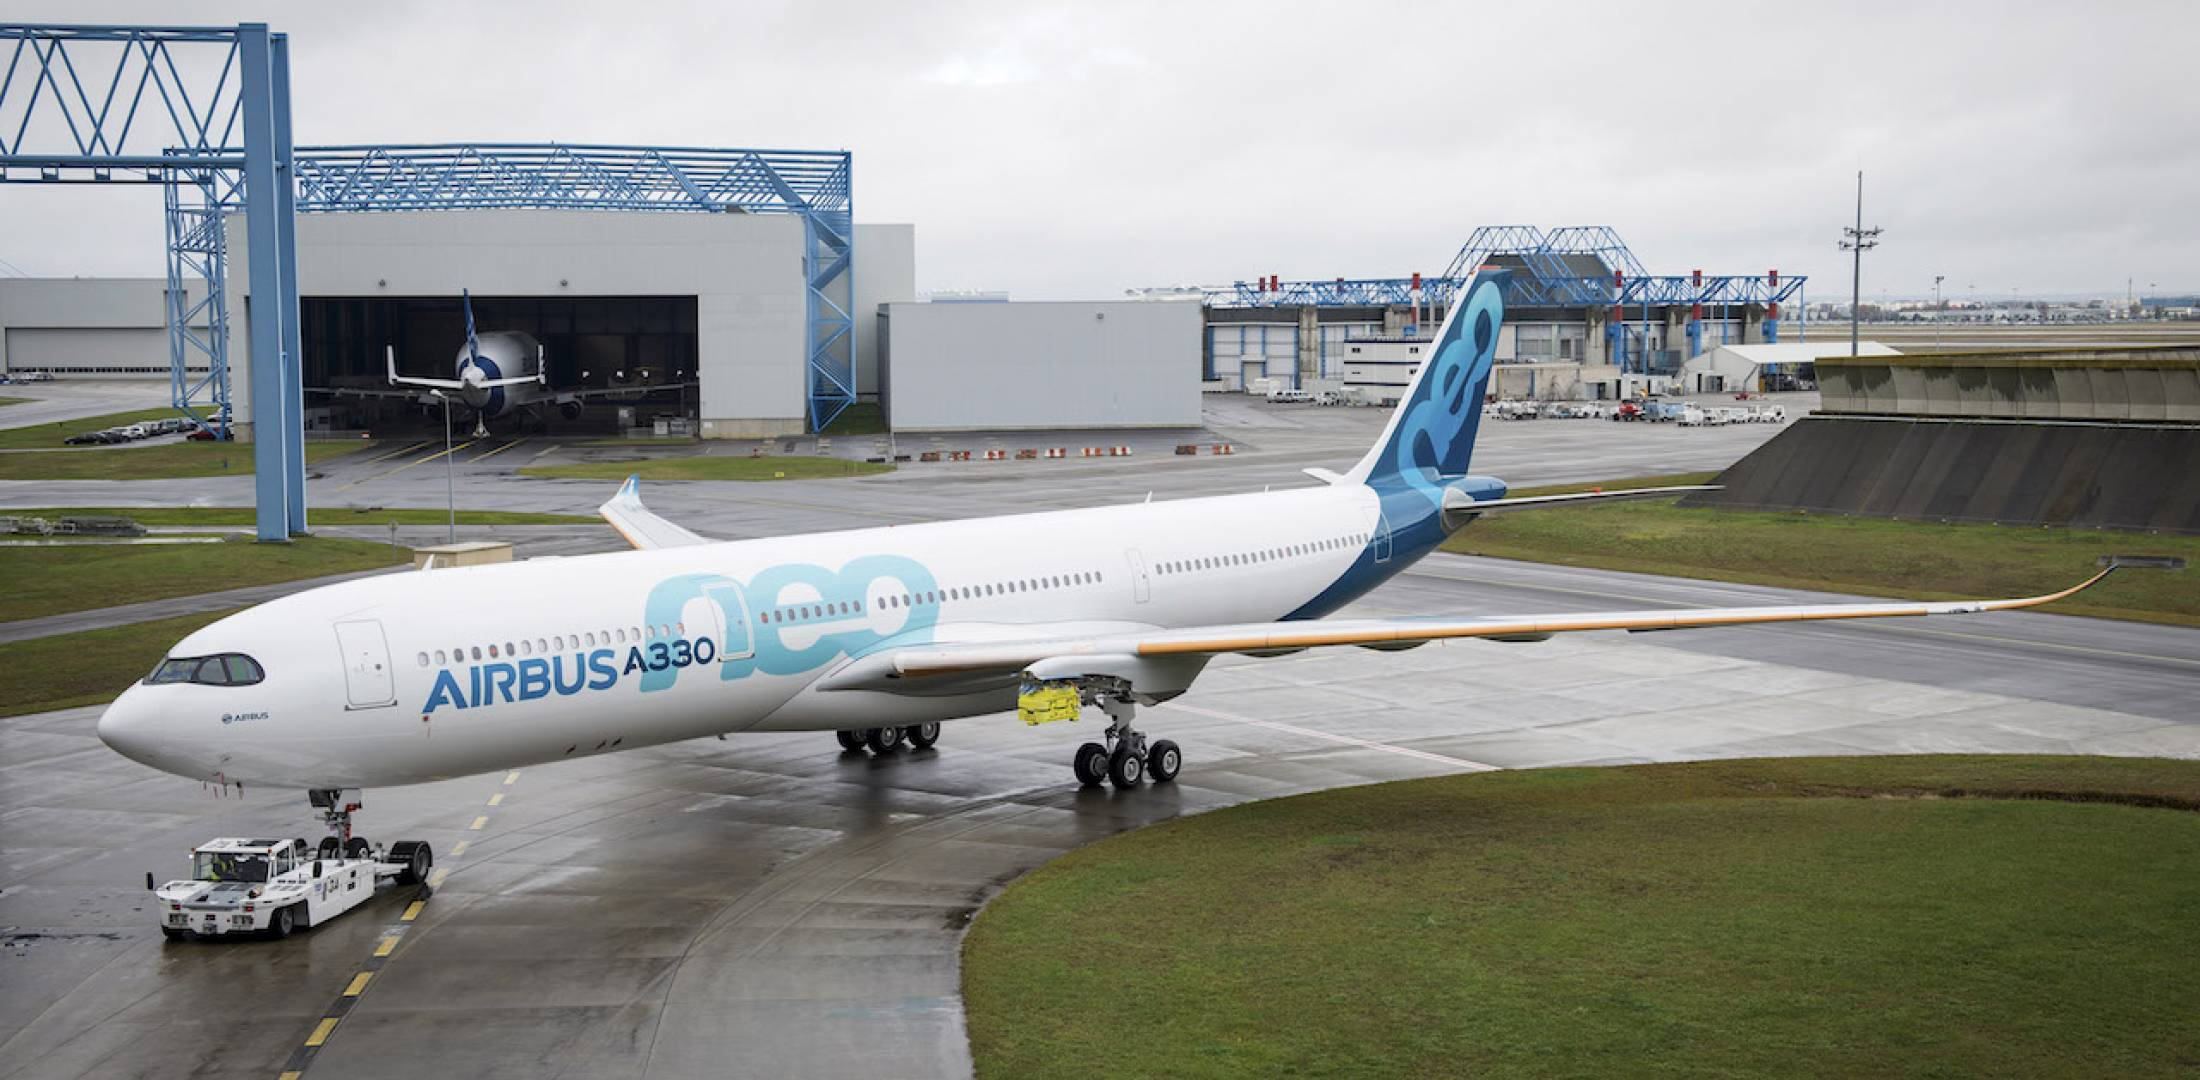 Analysis: A330 vs B787 – Boeing's Dreamliner and their